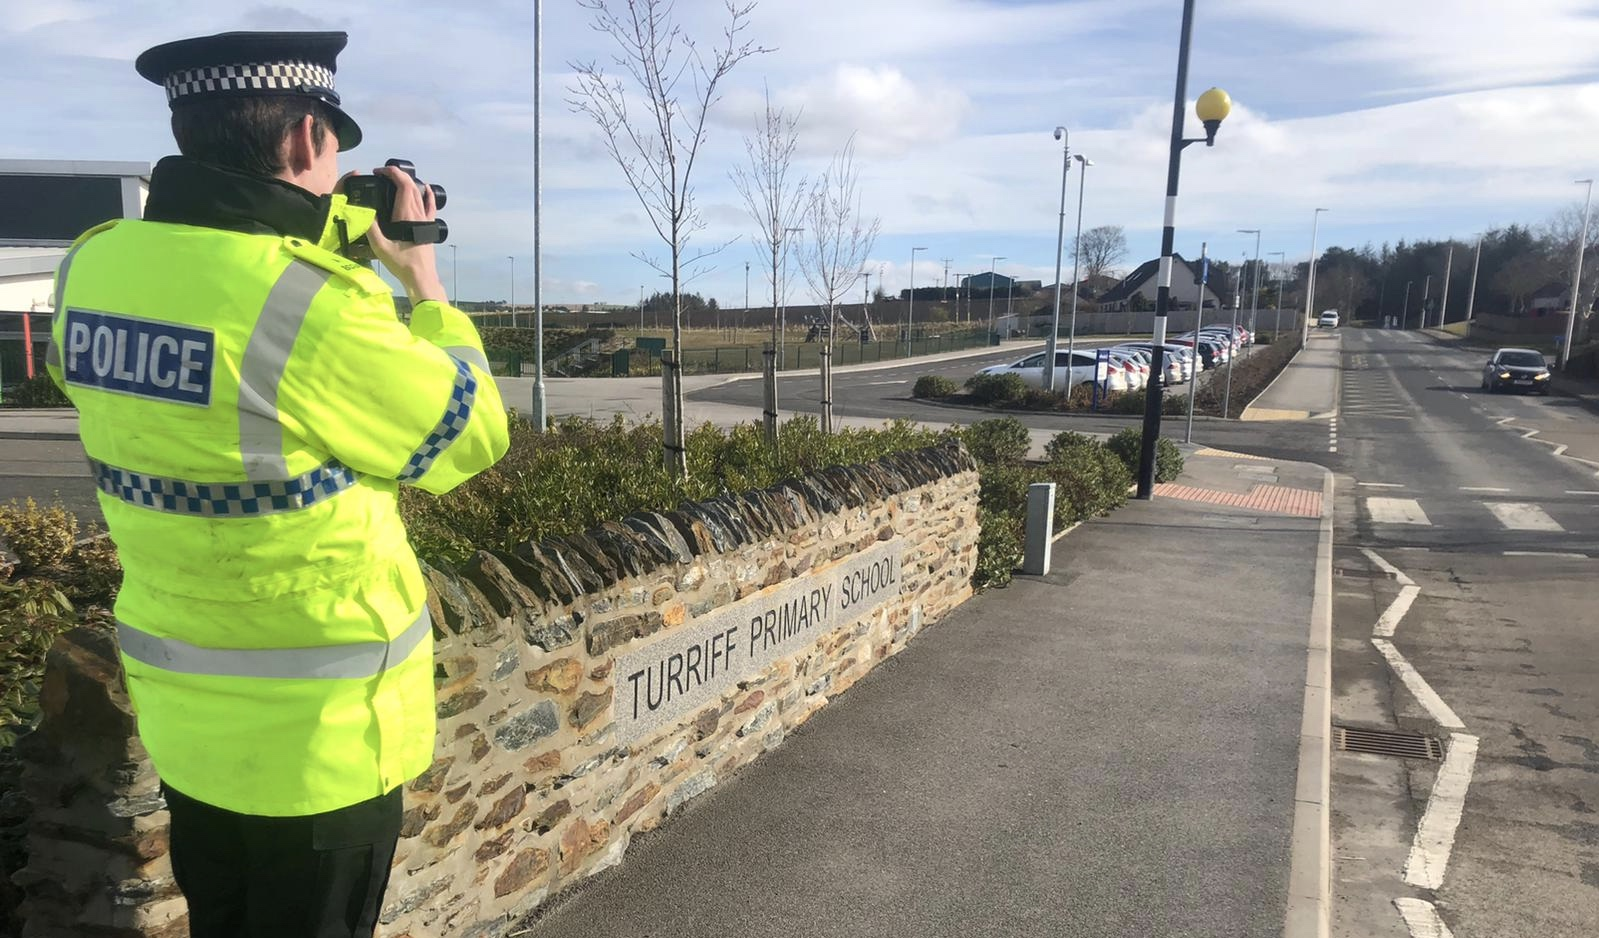 An officer outside Turriff Primary School